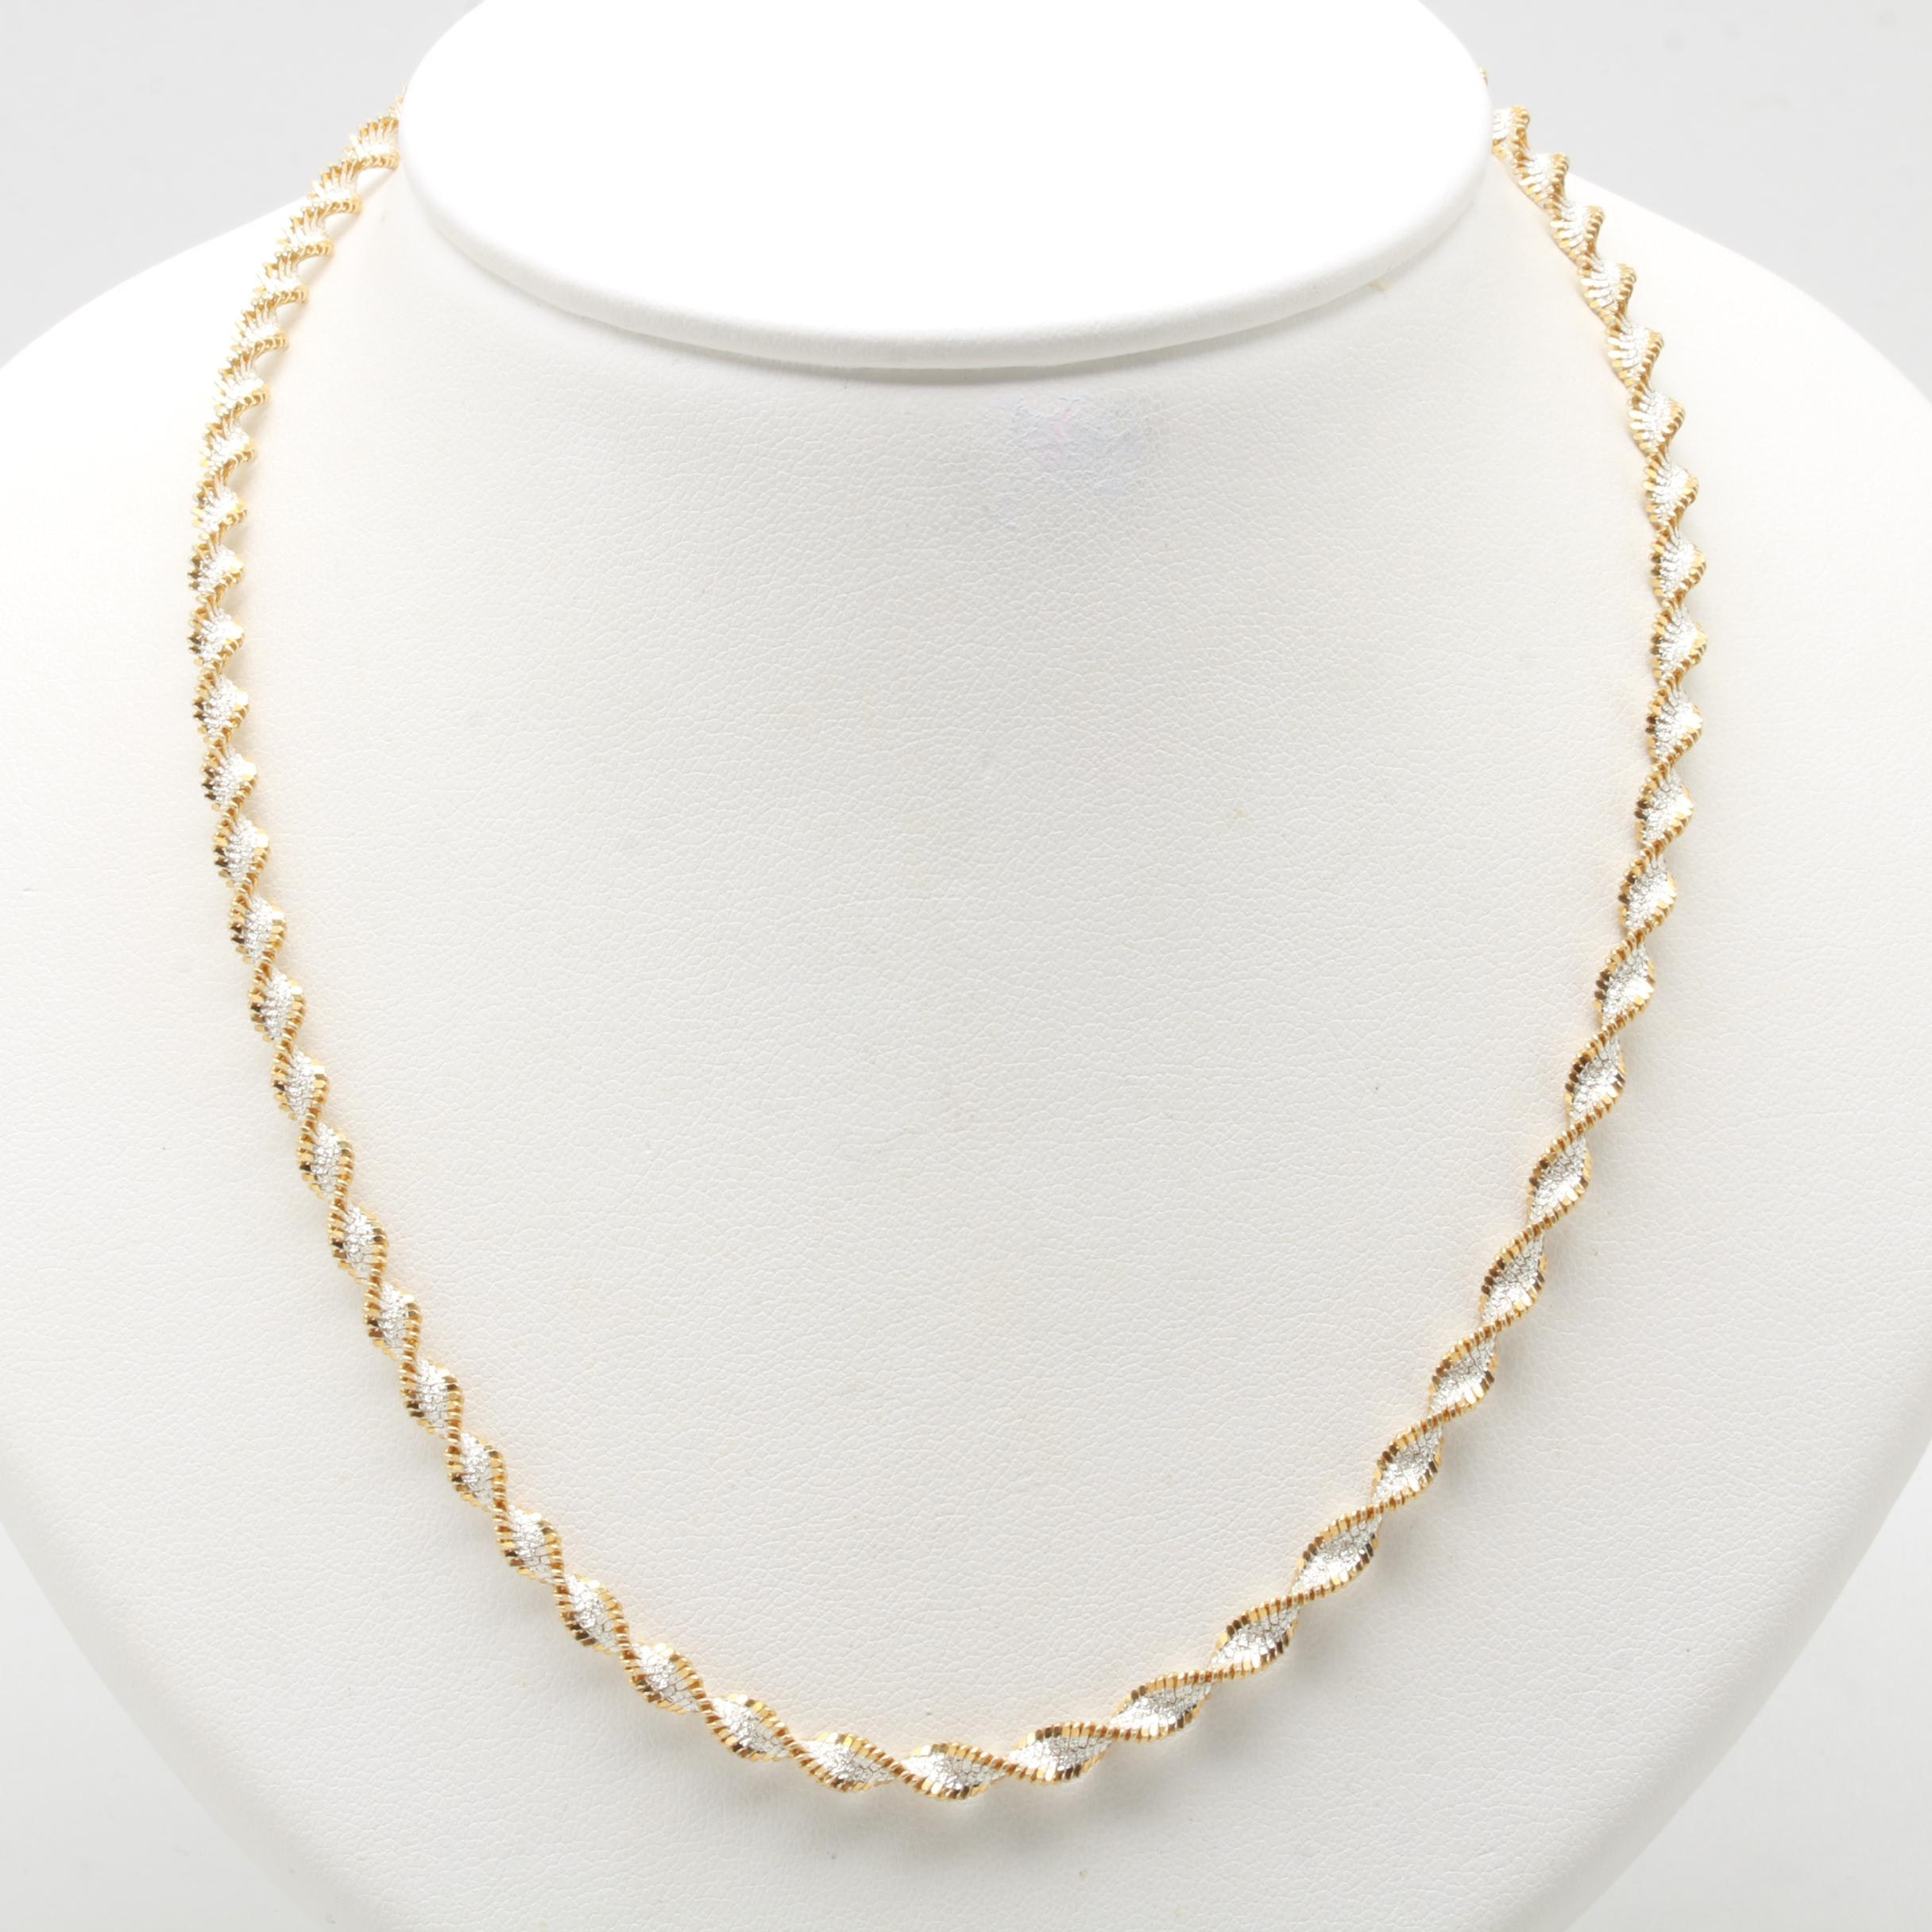 Italian Sterling Silver Two Tone Rope Twist Necklace